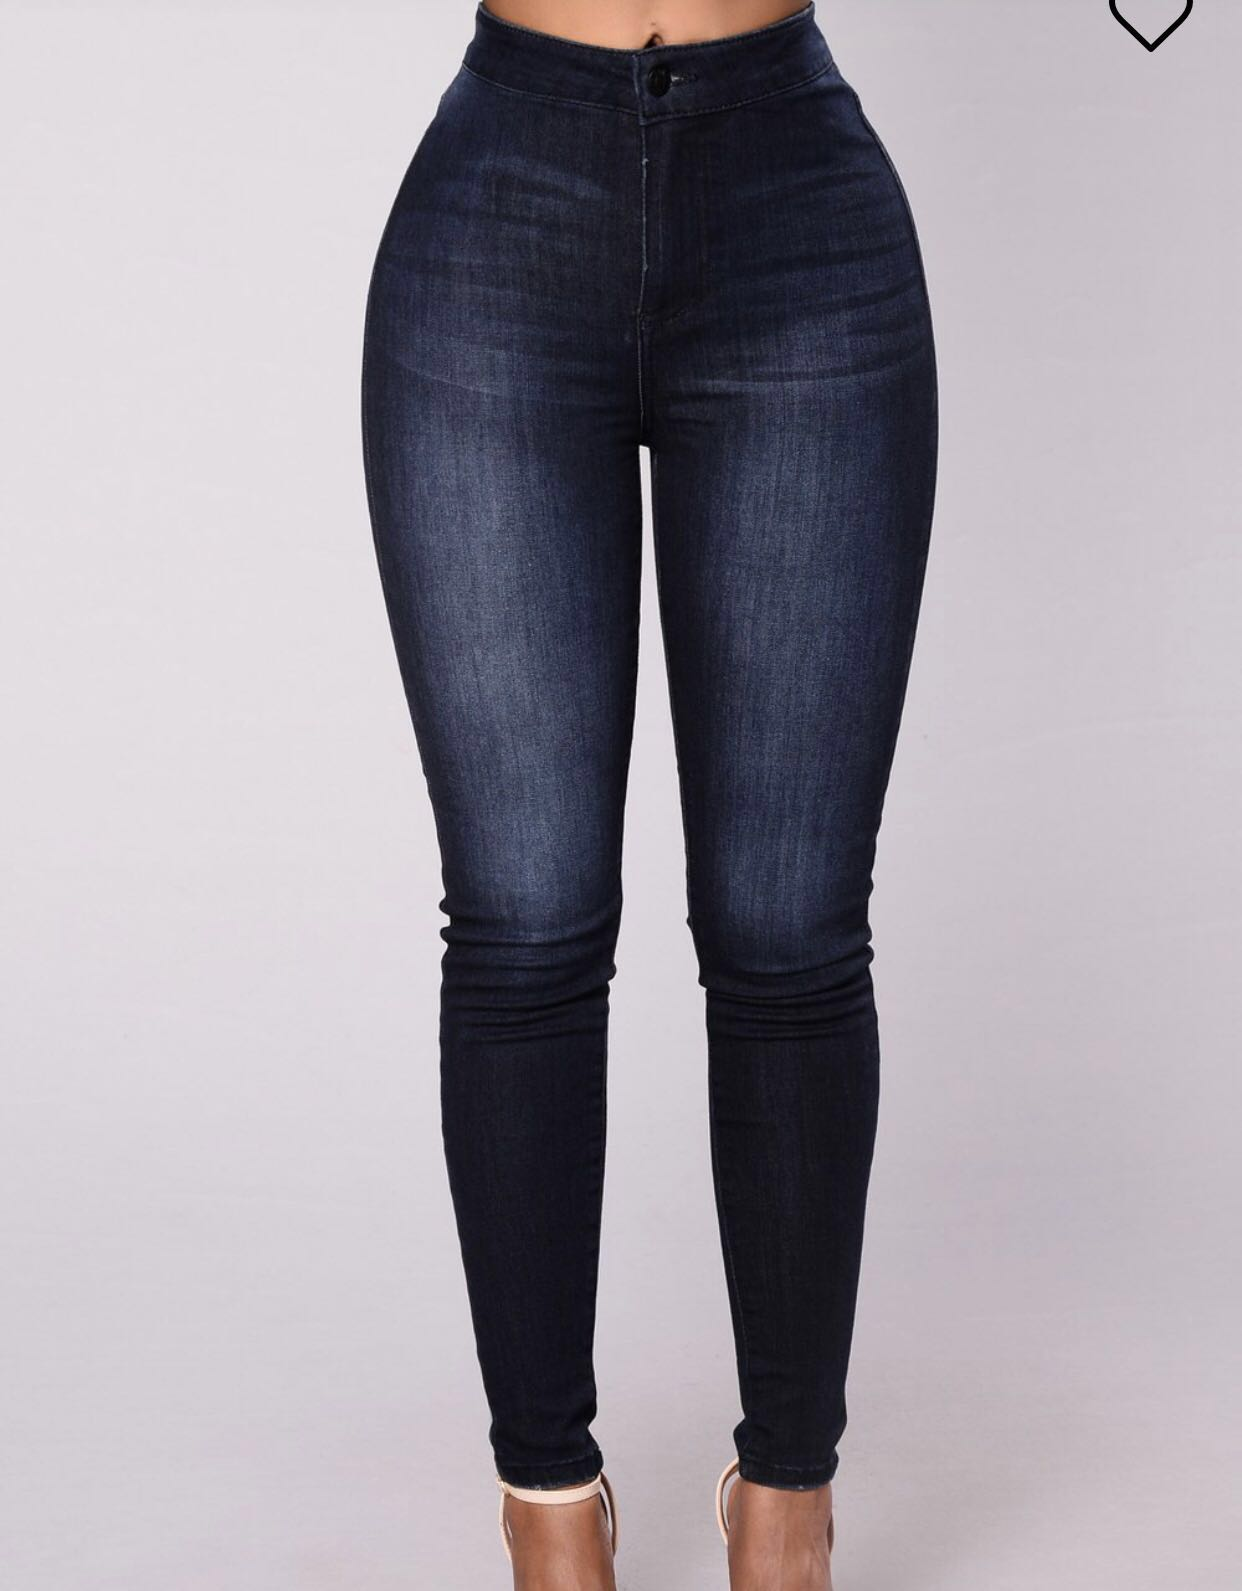 BNWT FASHION NOV DARK DENIM